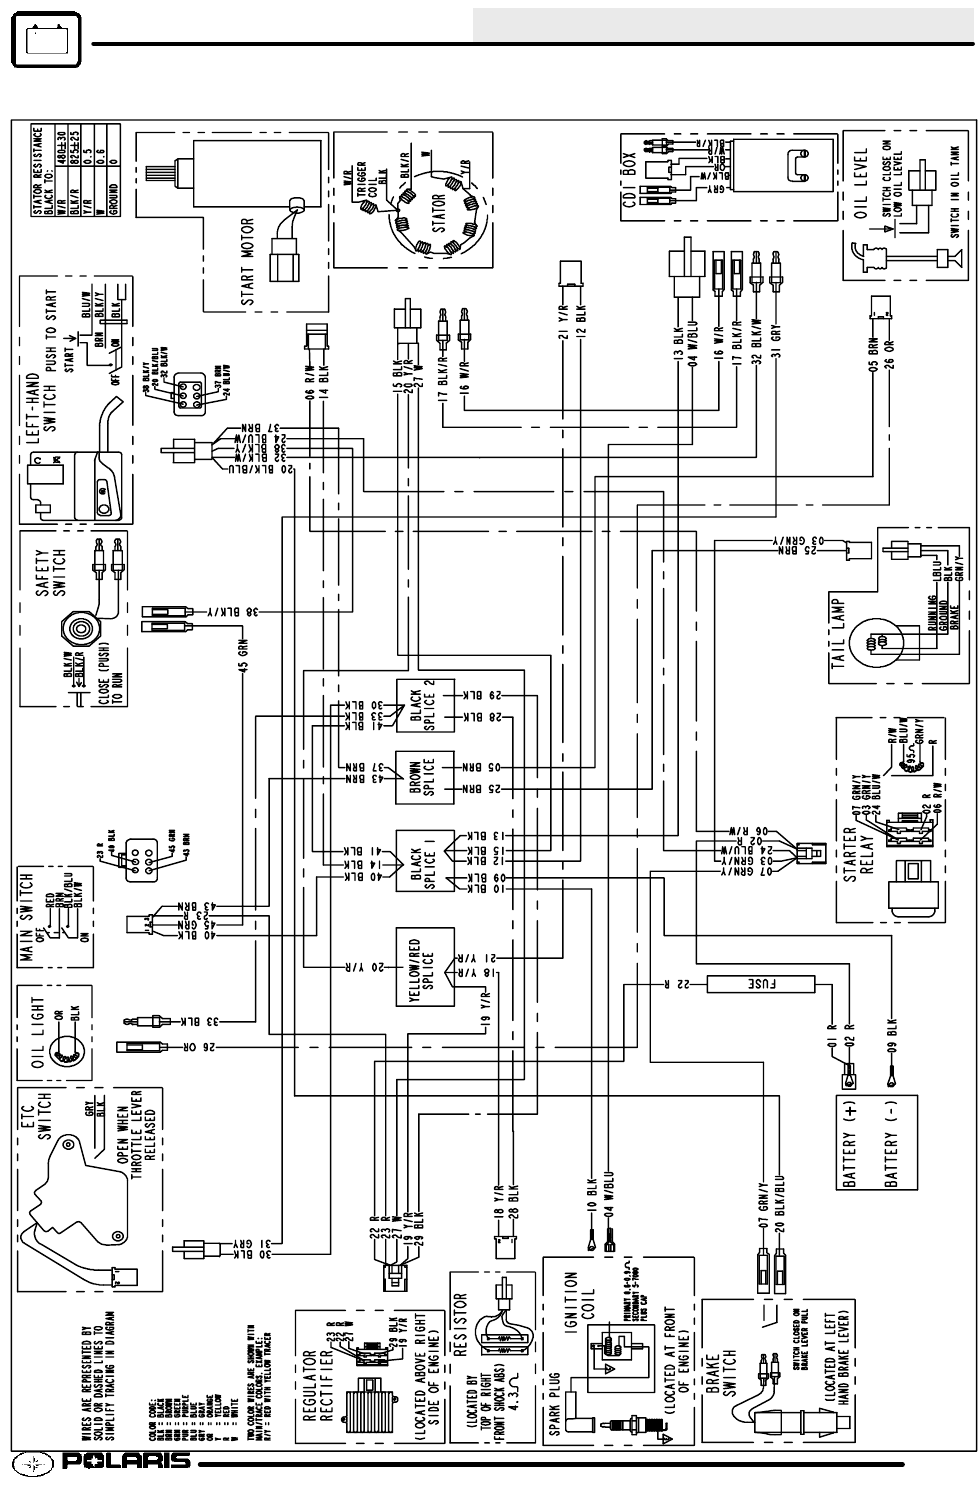 polaris scrambler 90 wiring diagram air compressor plumbing looking for outlaw 50 - atvconnection.com atv enthusiast community